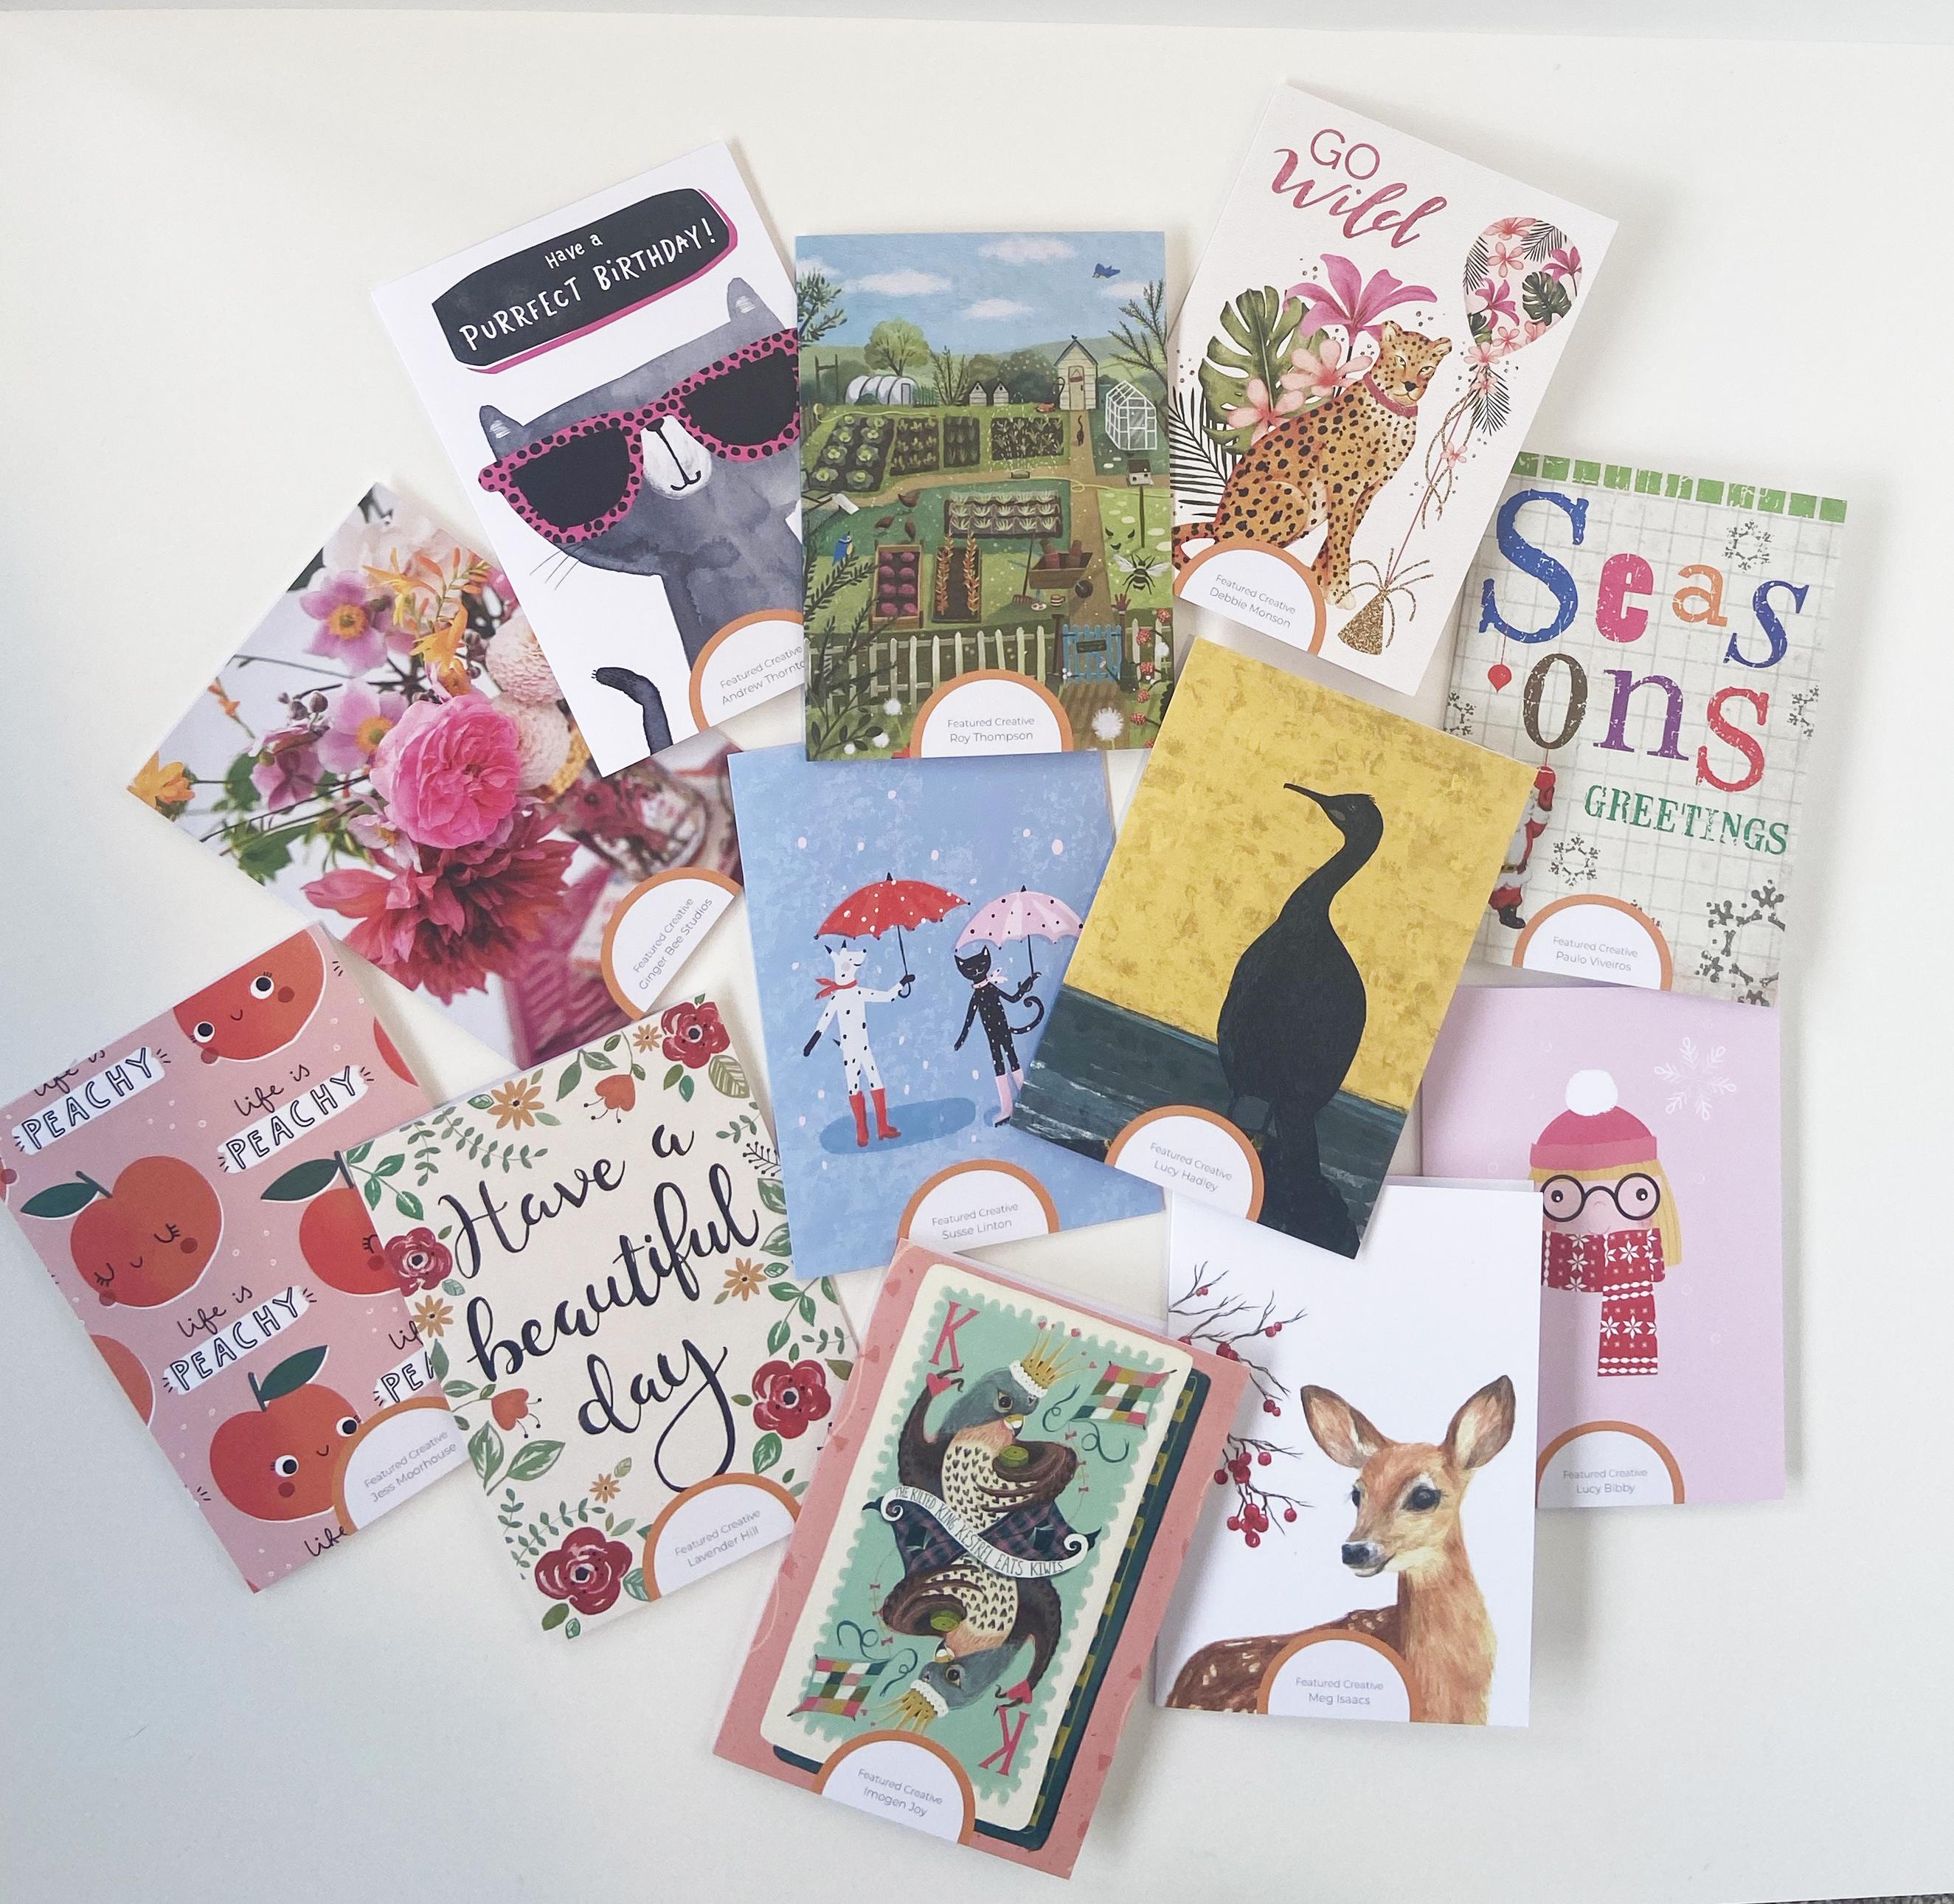 Above: The portfolio of artists means Creative Sparrow can offer a wide selection of styles to be licensed for greeting cards and other products.